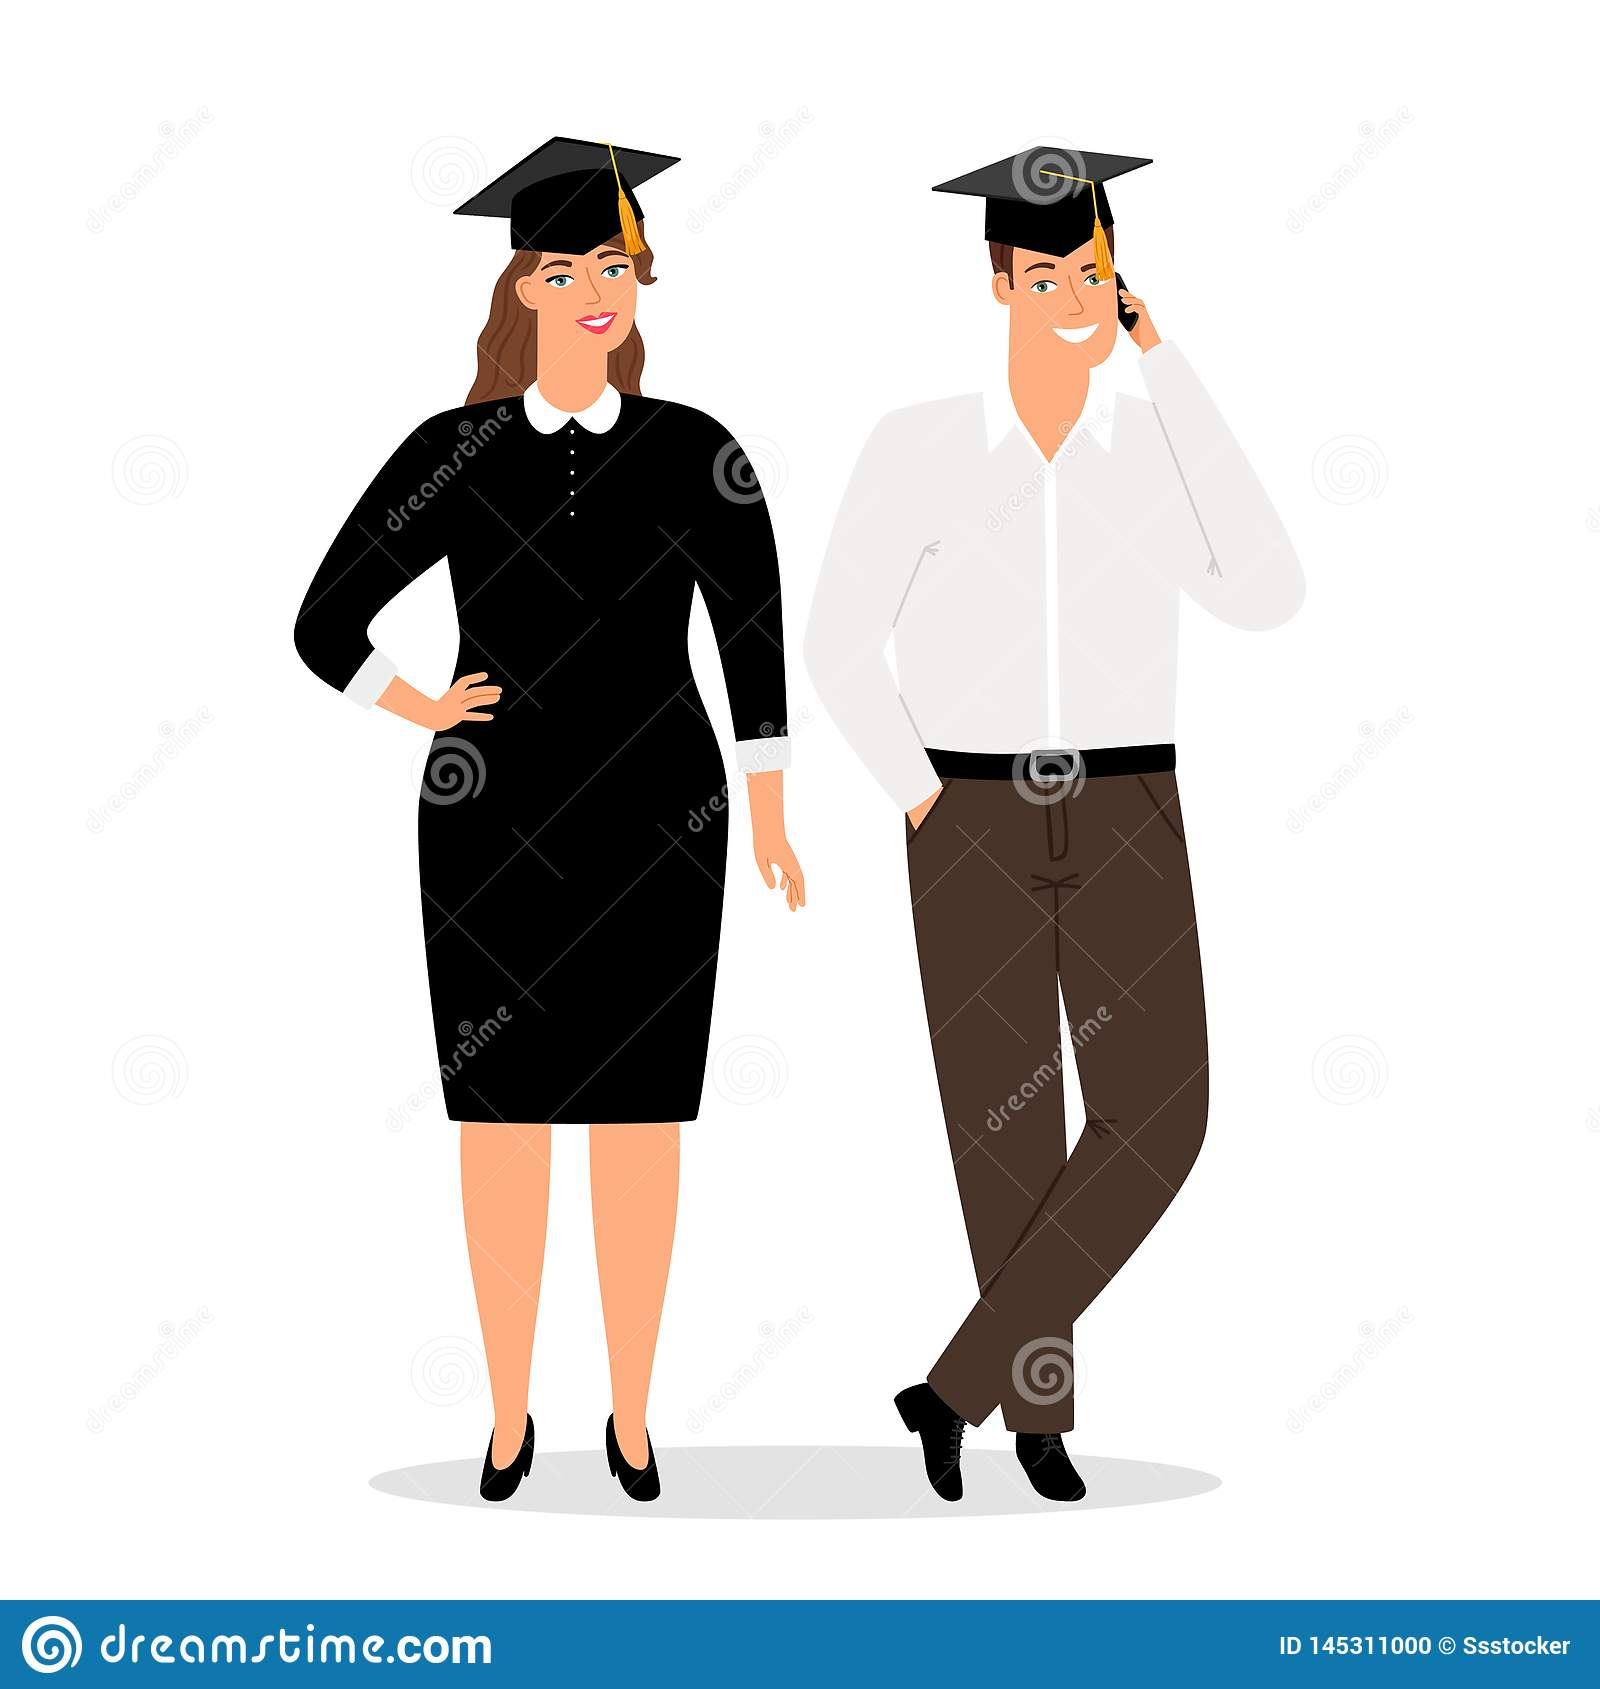 Graduates people in official clothes vector illustration